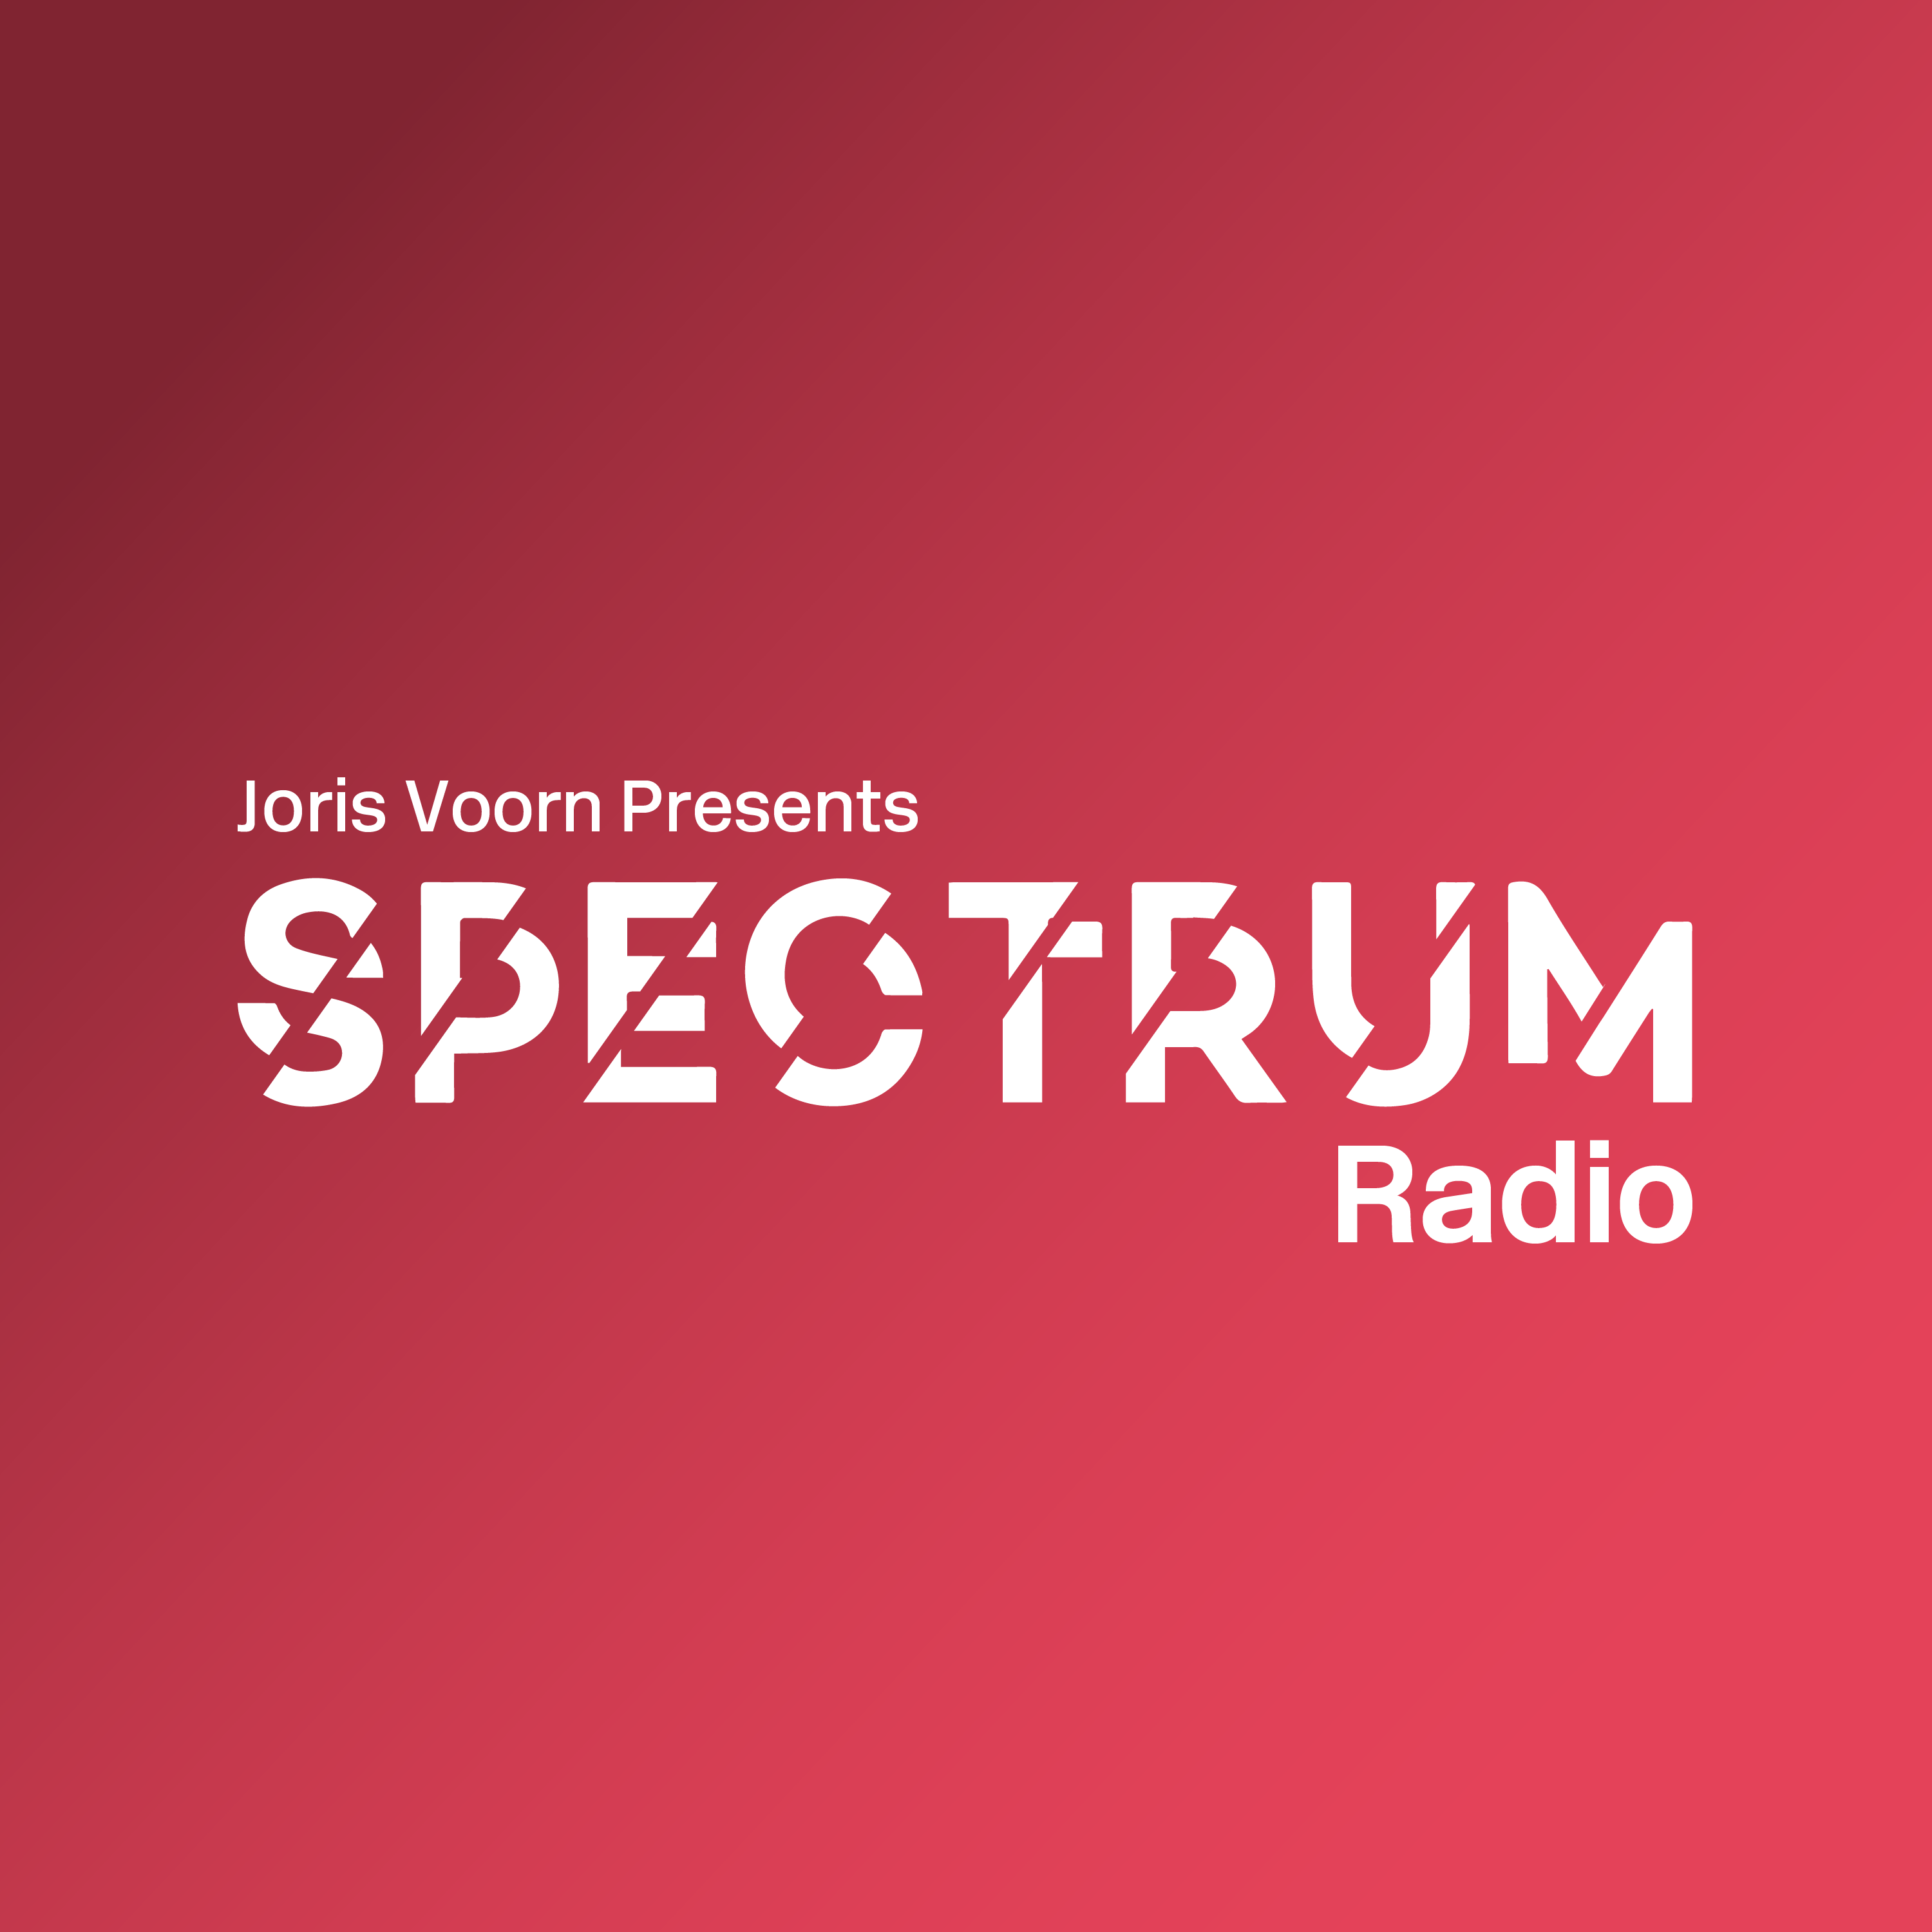 Delta Podcasts - Spectrum Radio By Joris Voorn (08.10.2017)